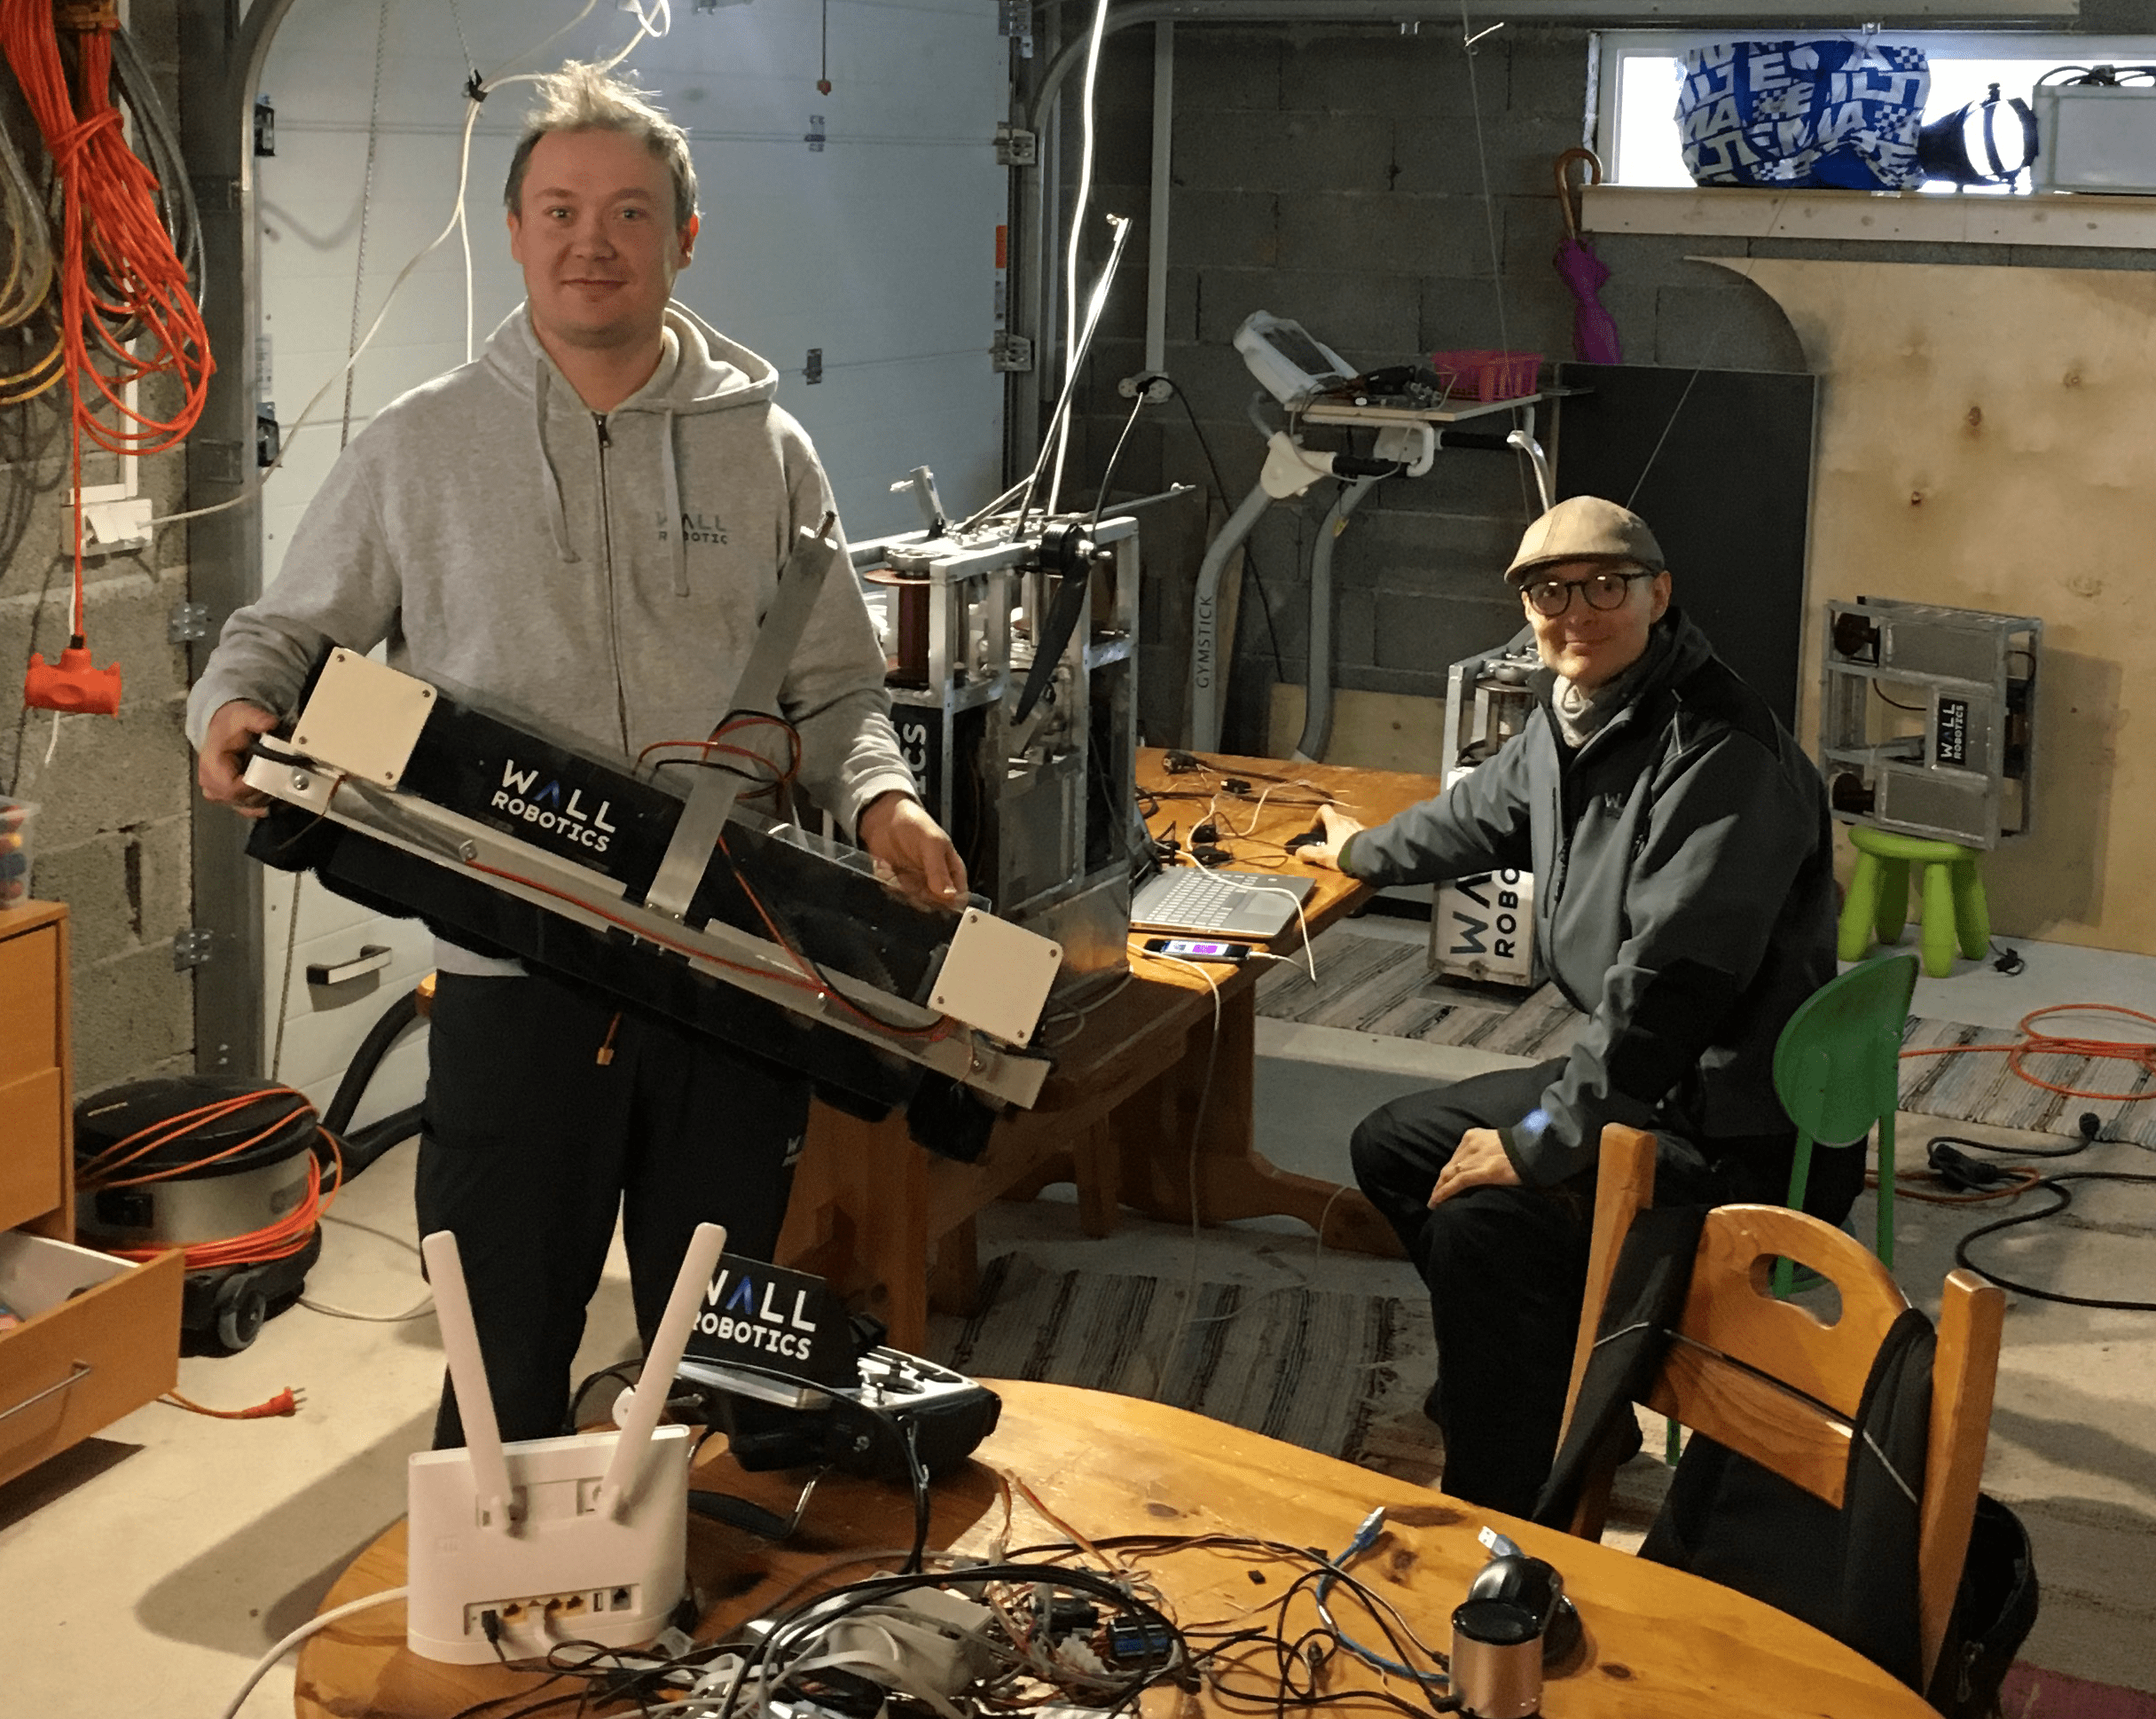 Mikko Valtonen and Petteri Kontio in their manufacturing facilities in Espoo.